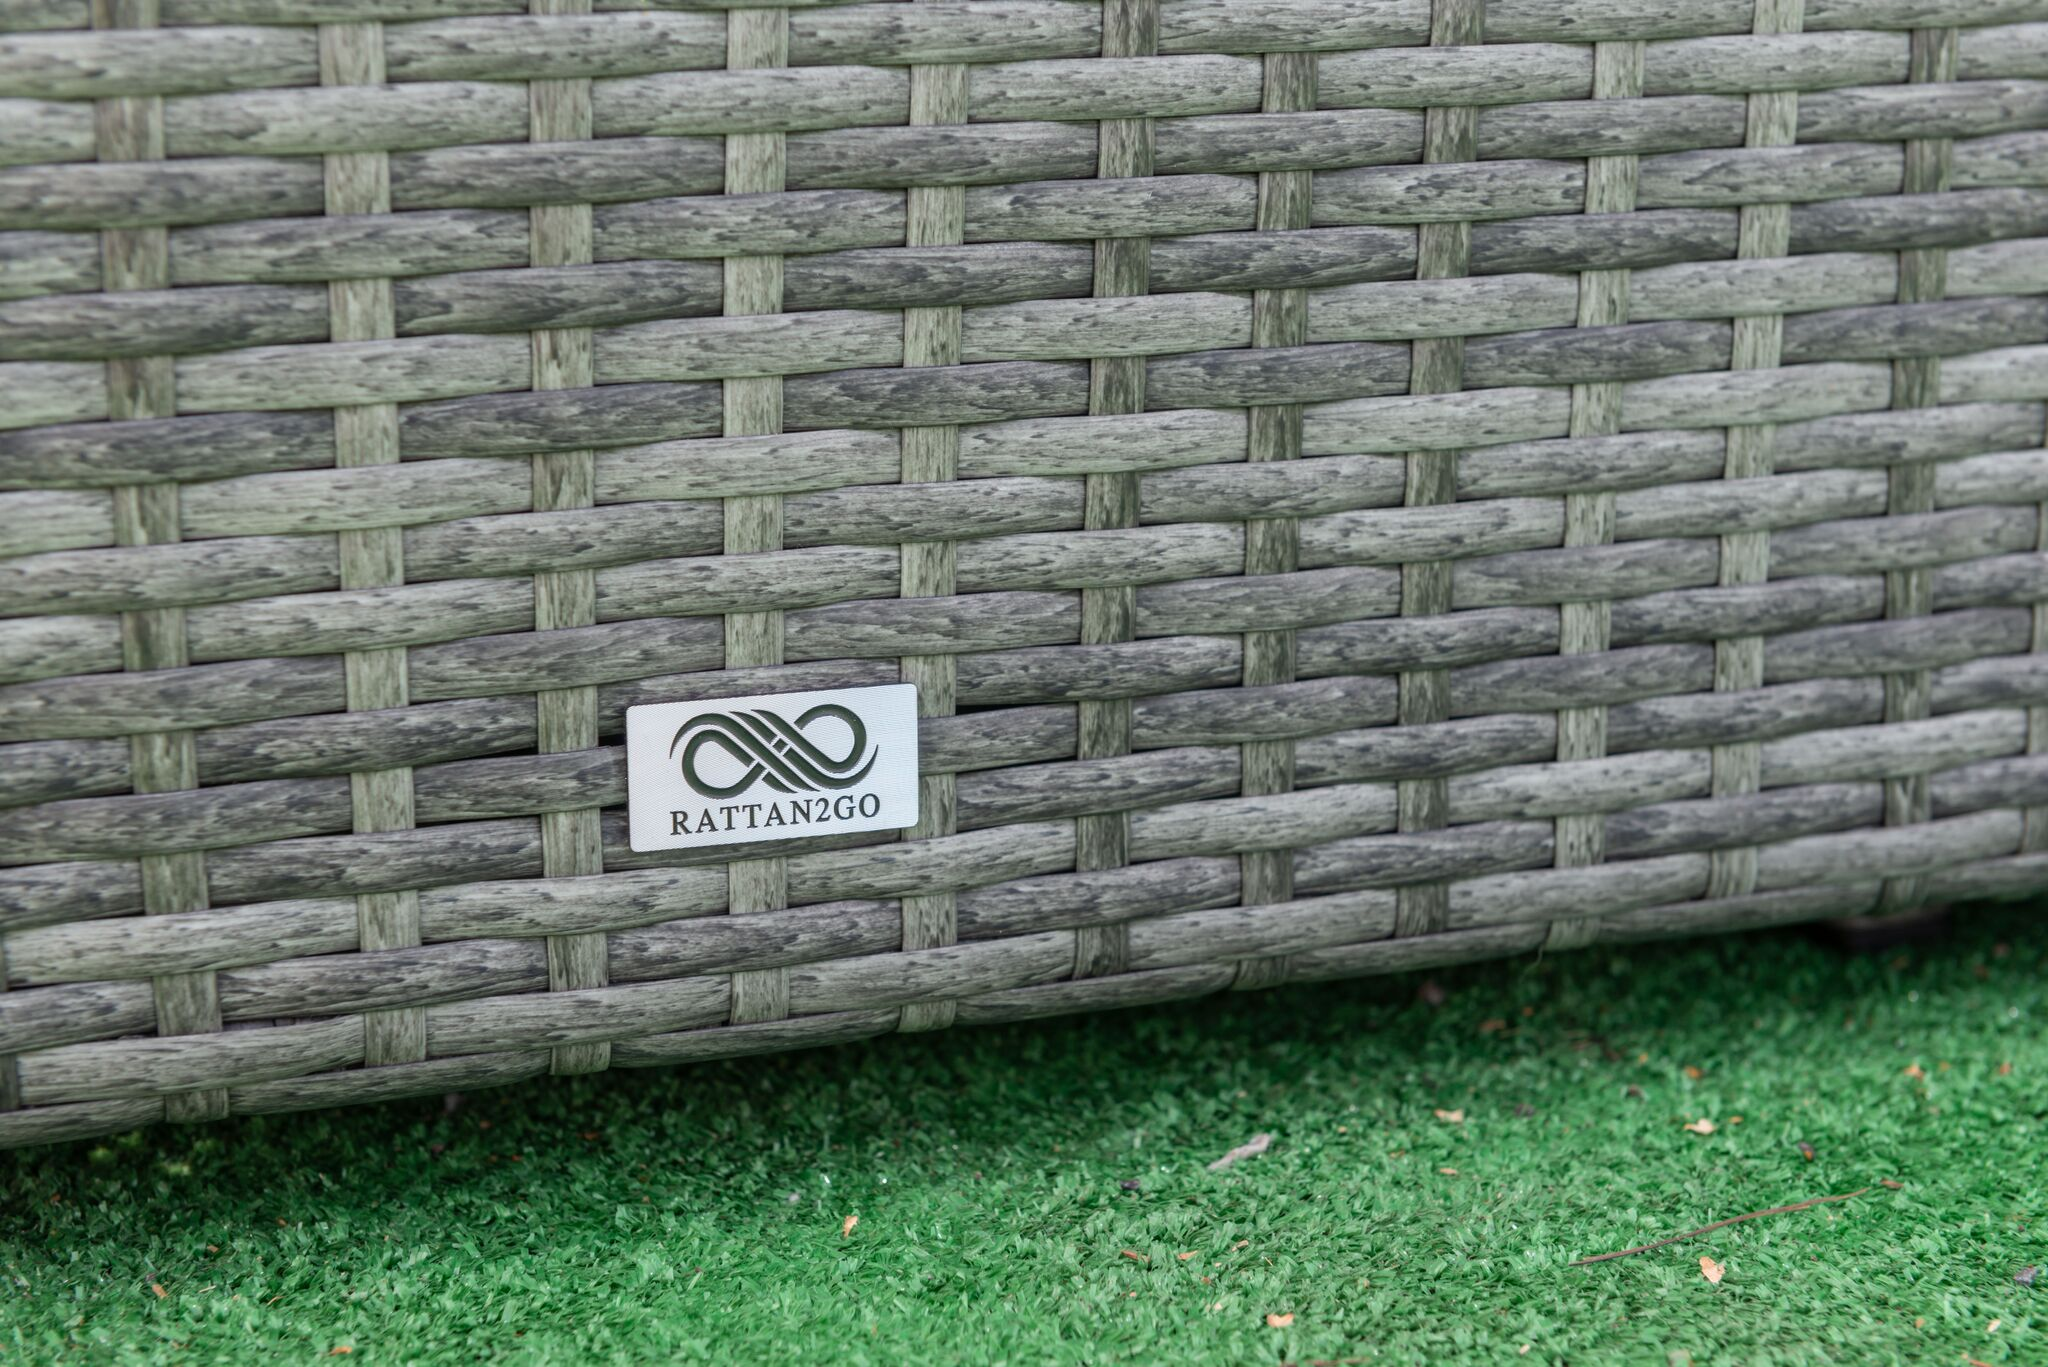 Luxury Storage Box Grey Mix Rattan Rattanfurniture2go